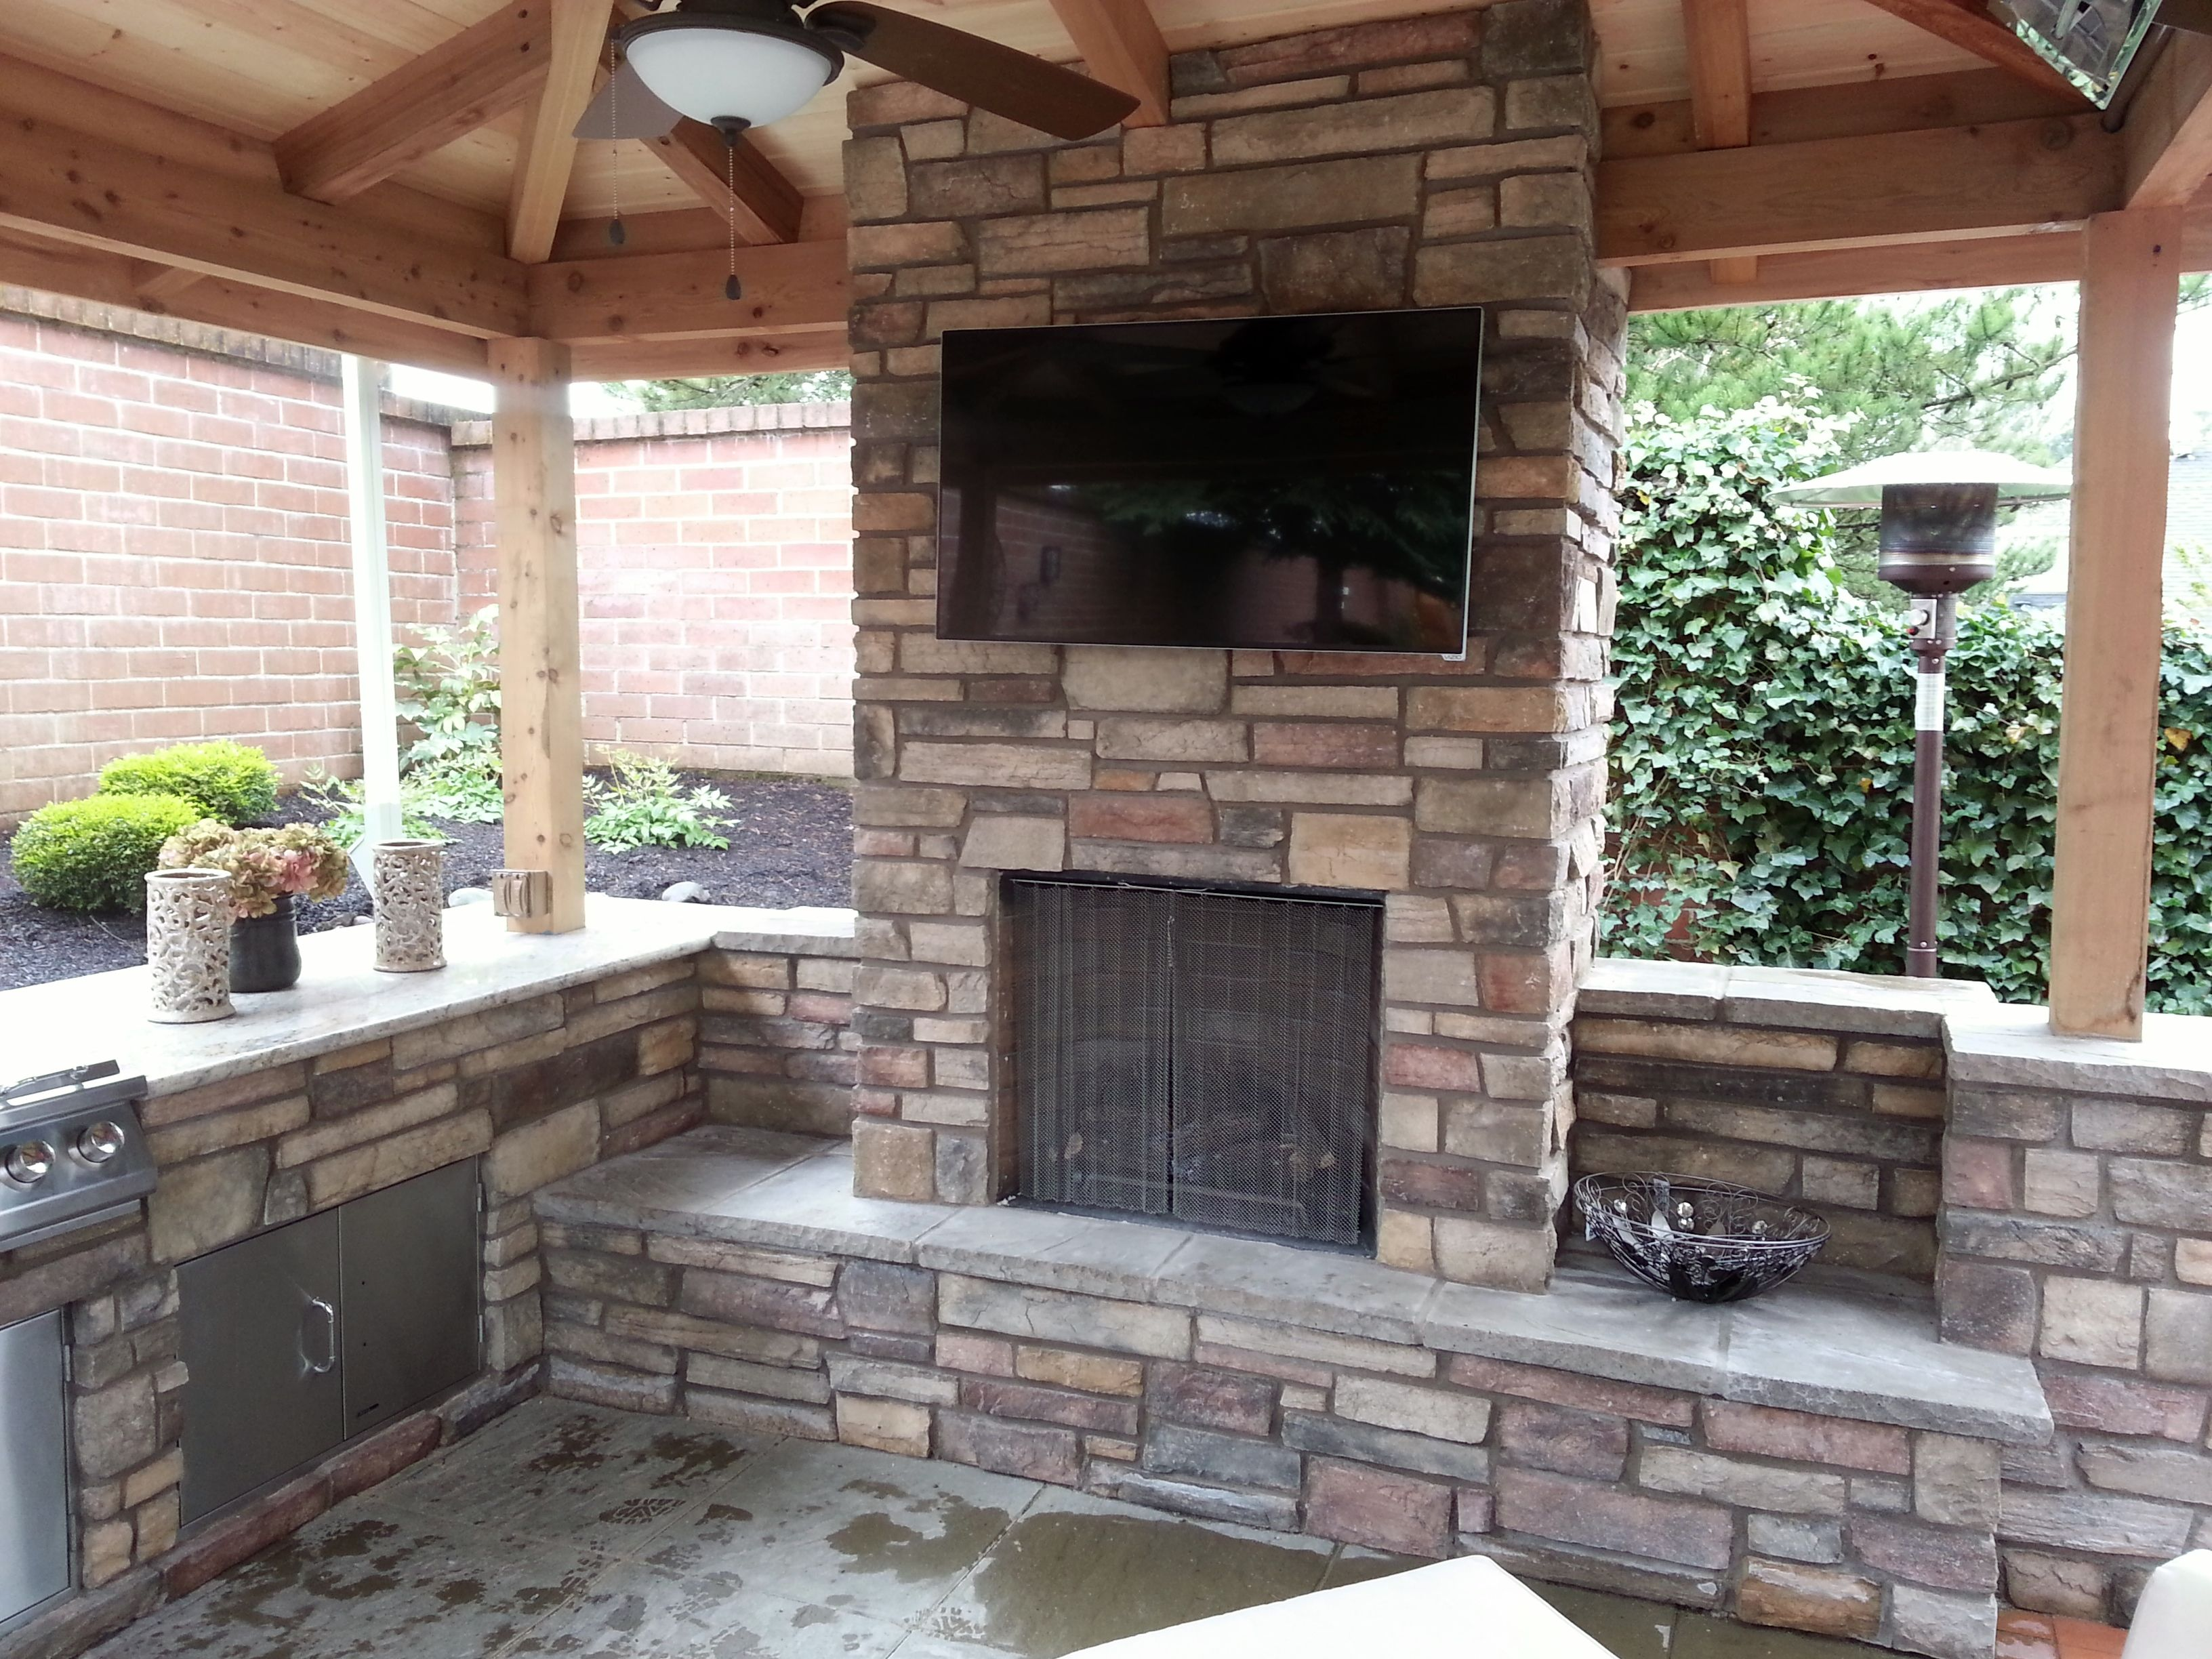 Outdoor fireplace outdoor living outdoor kitchen for Outdoor stone kitchen designs